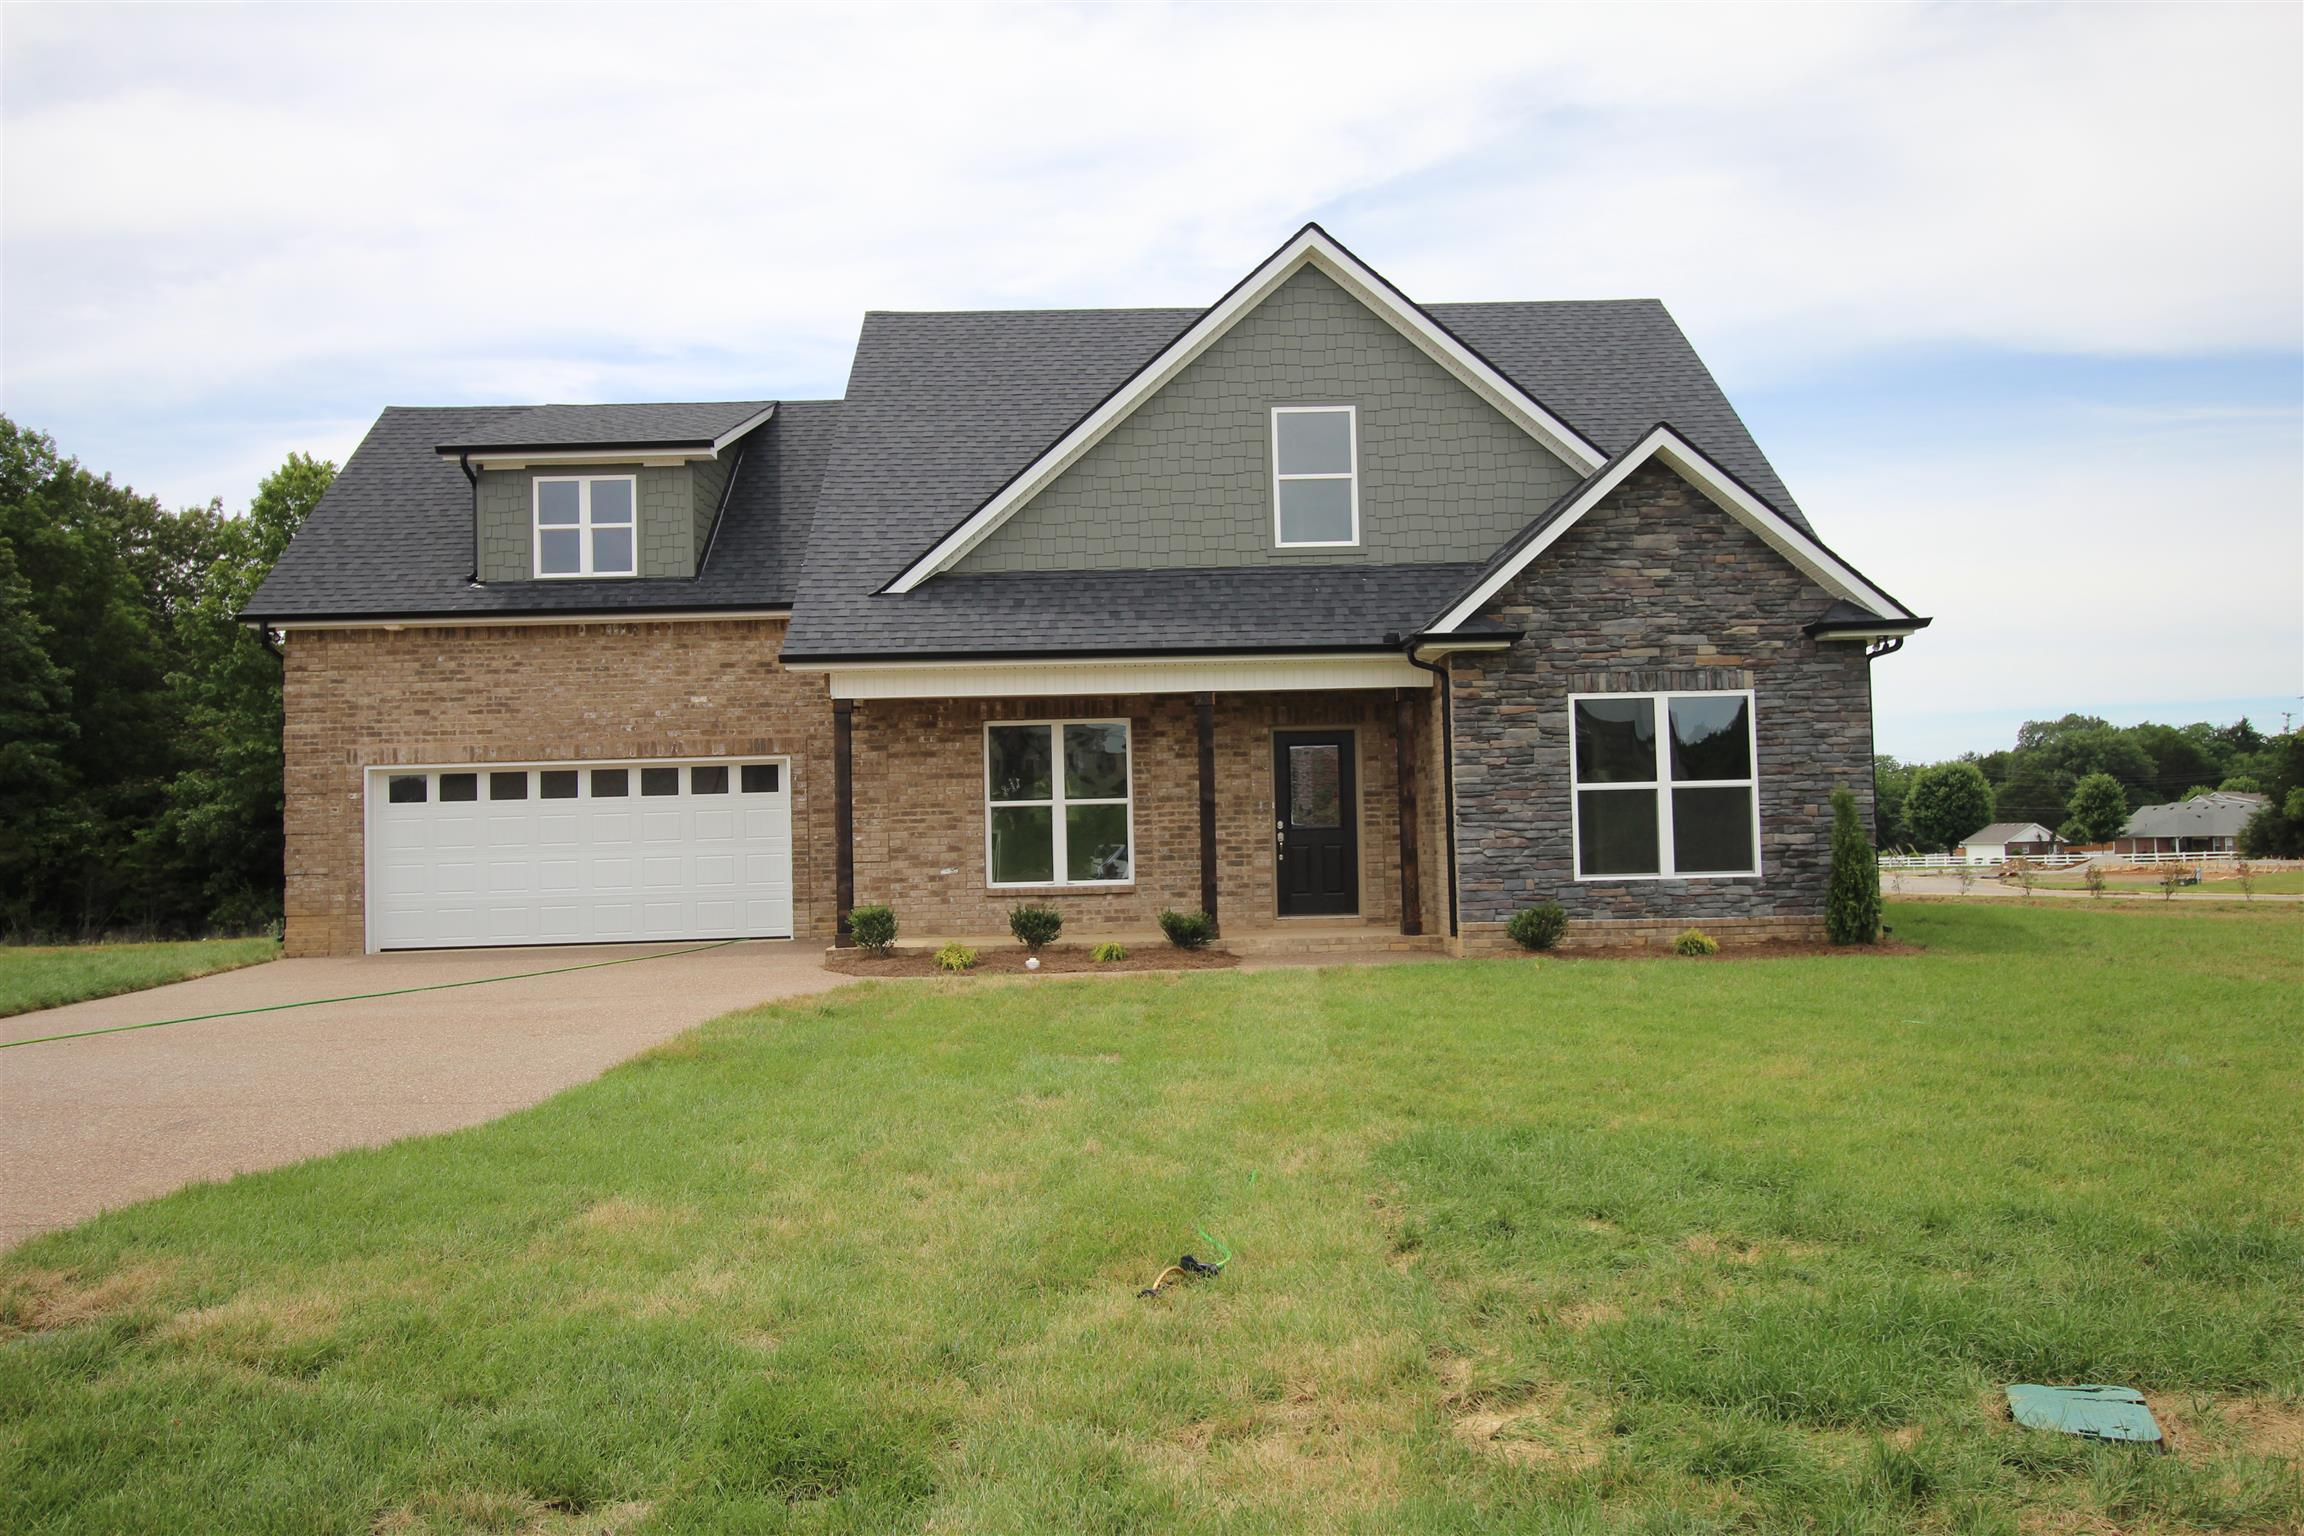 804 Sadie Ann Ct (Lot 32), Smyrna, TN 37167 - Smyrna, TN real estate listing